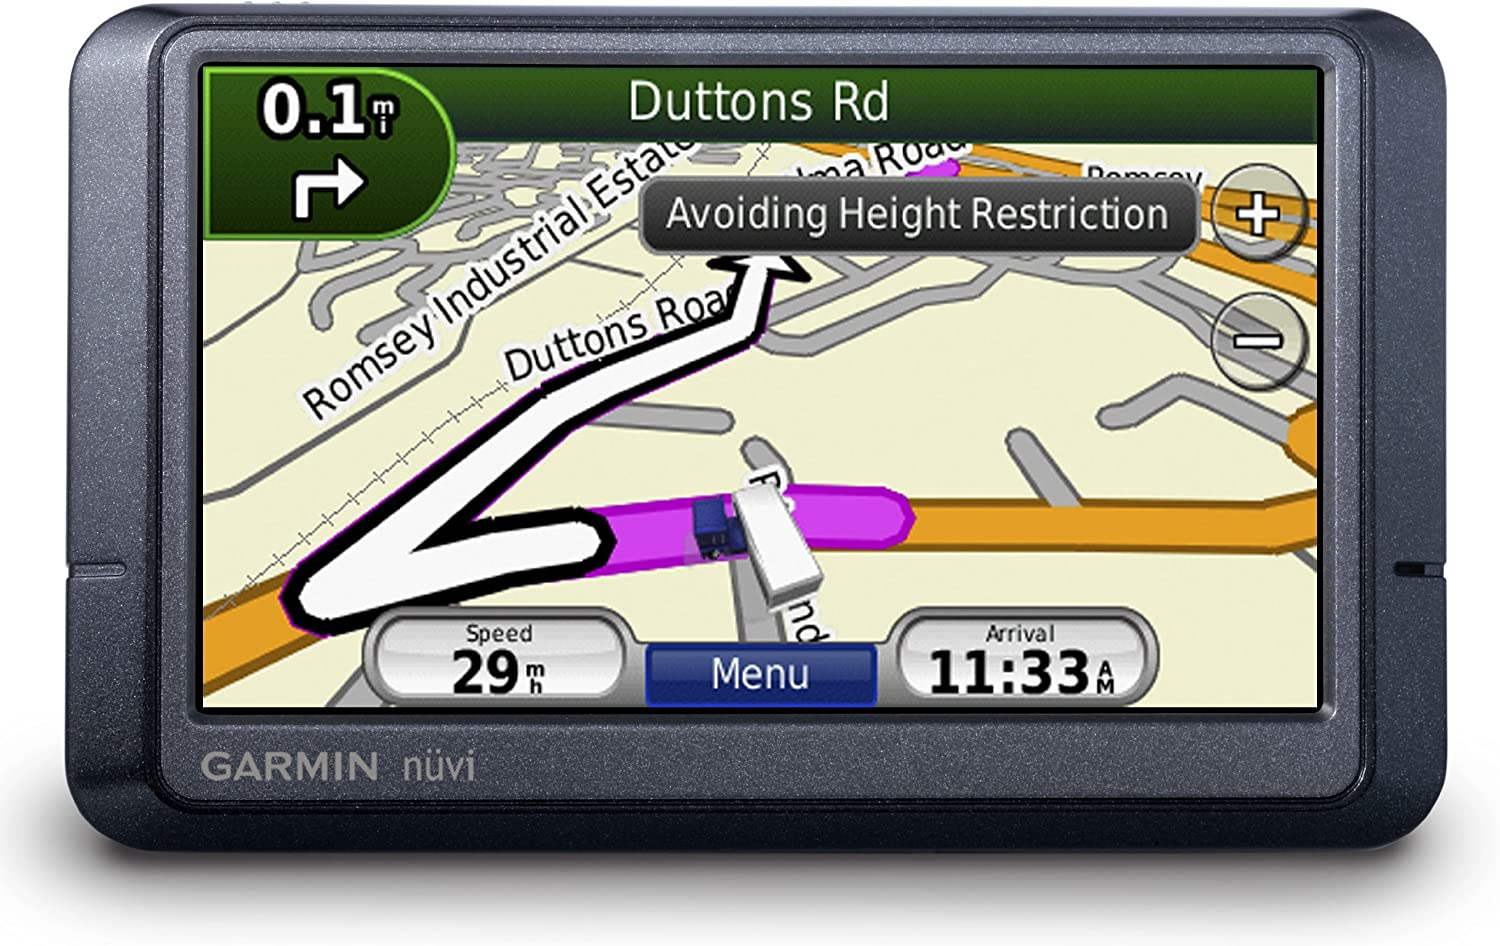 TomTom Go Professional 6250 GPS Truck Sat Nav with Full European Bus Caravan Lifetime Maps and Traffic Services Designed for Truck Coach Motor-homes and Other Large Vehicles Including UK